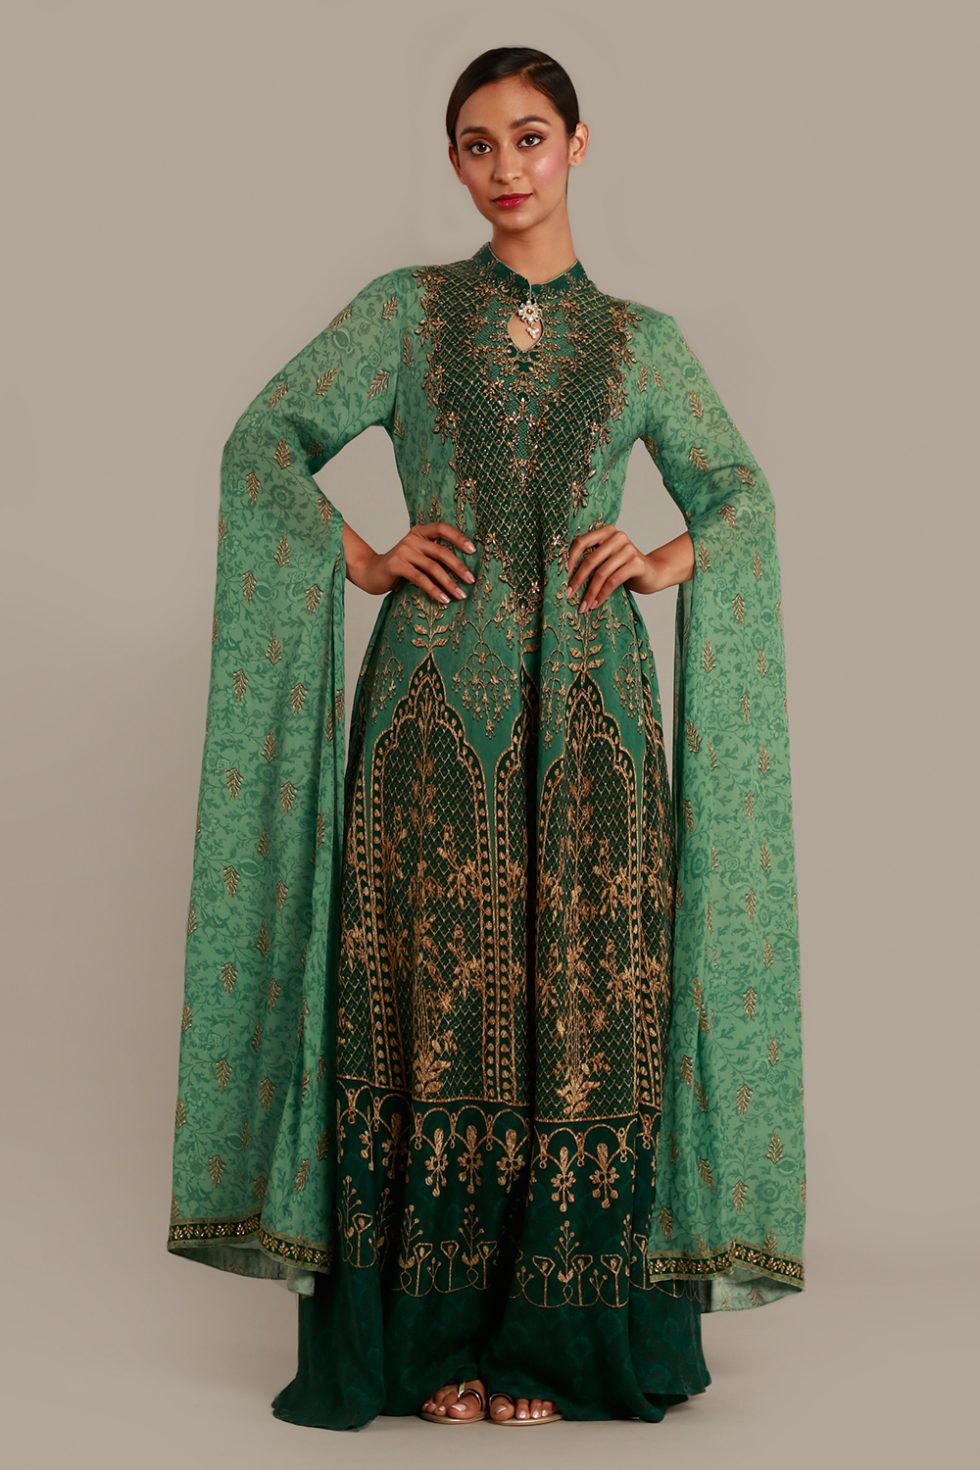 Fern green printed kurti with slit kaftan sleeves and gold embellishments.